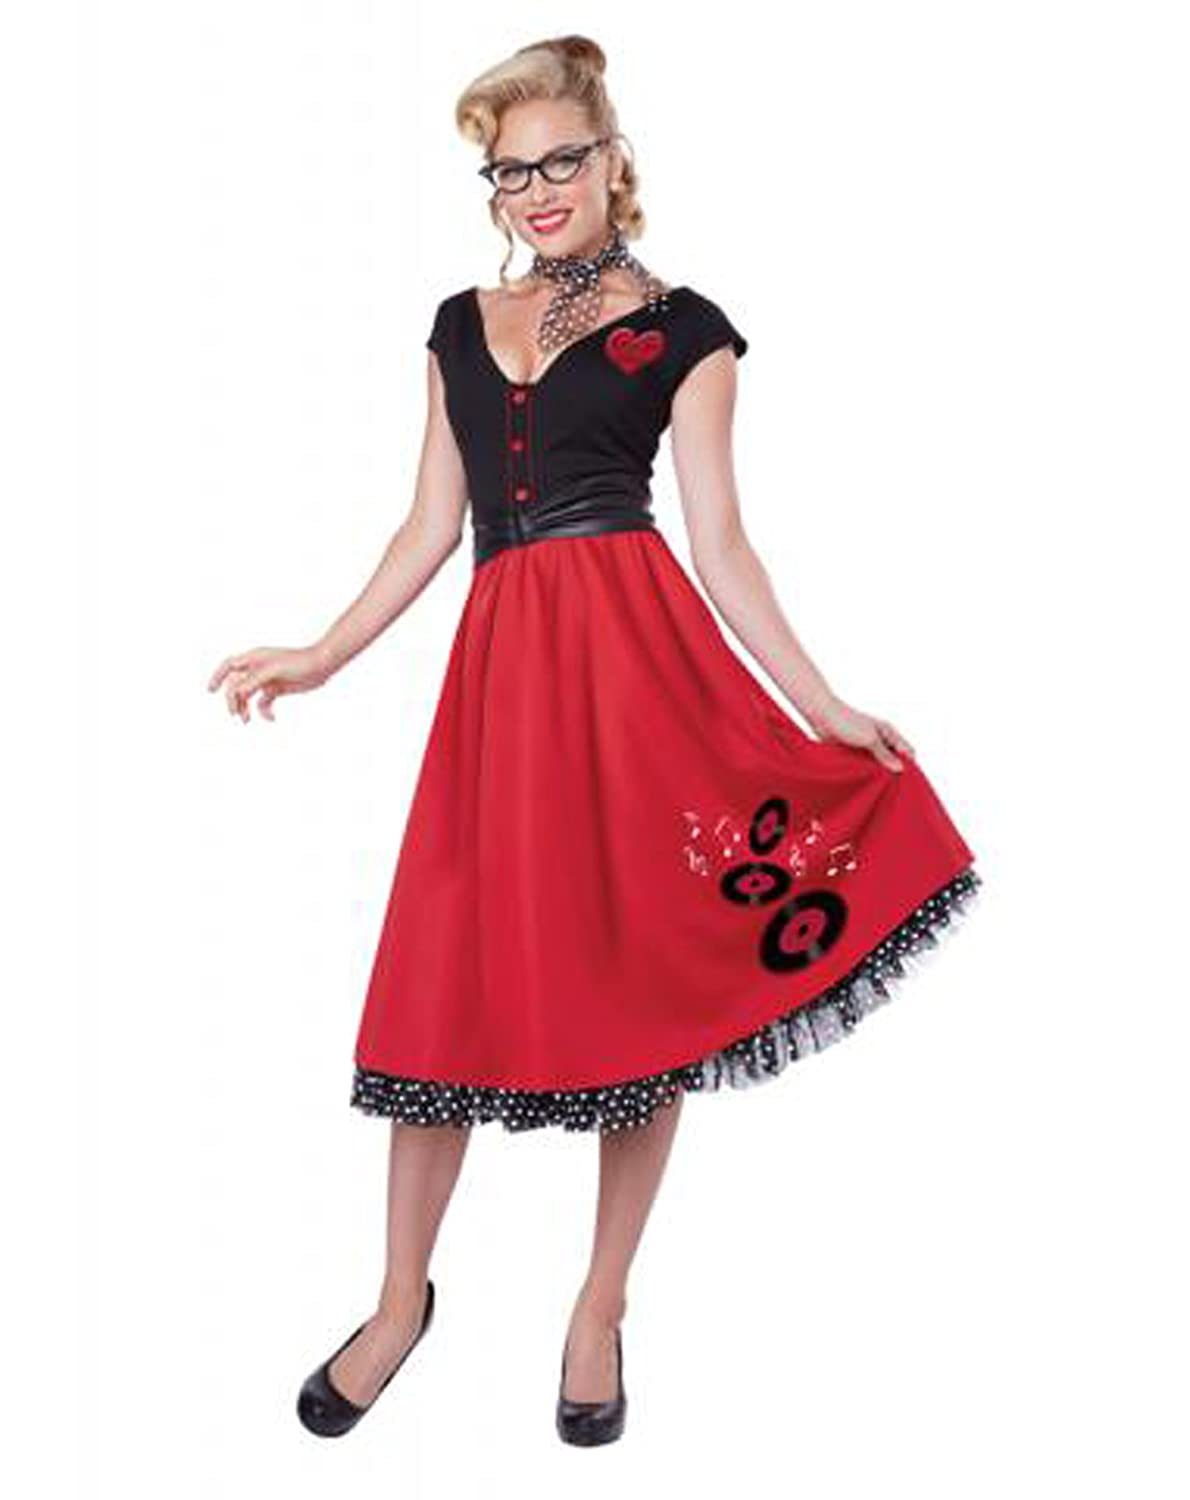 1950s Costumes- Poodle Skirts, Grease, Monroe, Pin Up, I Love Lucy  Rock N Roll Sweetheart 50s Pin Up Costume  AT vintagedancer.com